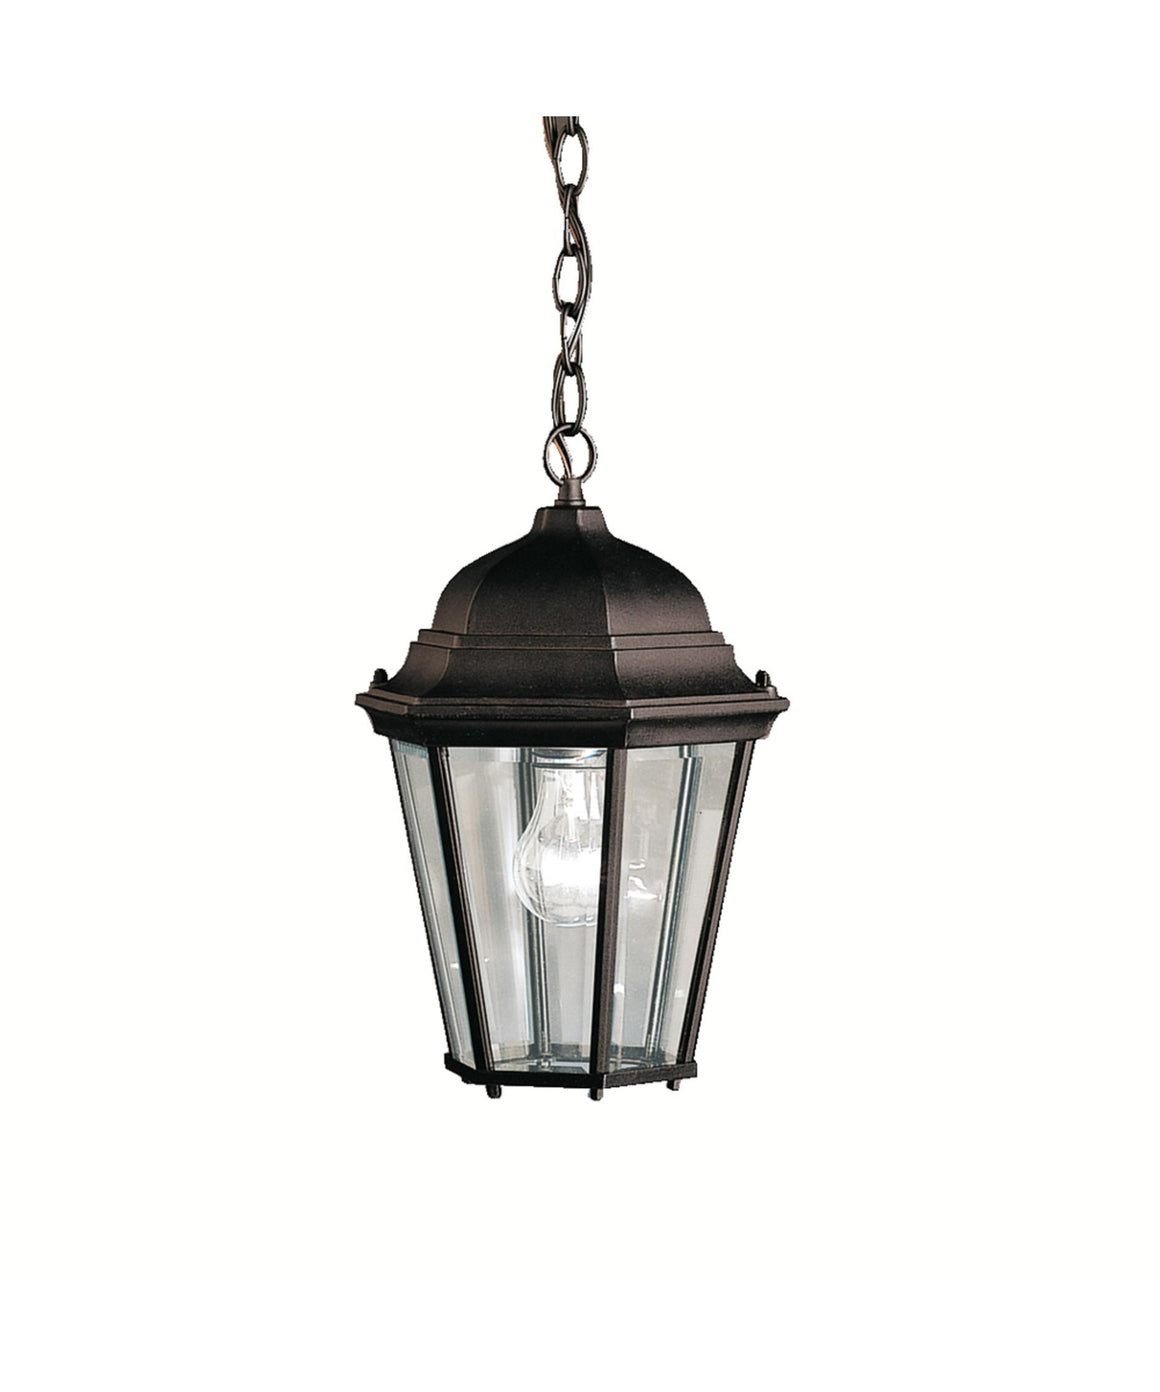 3D-9805 BKOutdoor Lighting Accessories - Graham's Lighting Memphis, TN